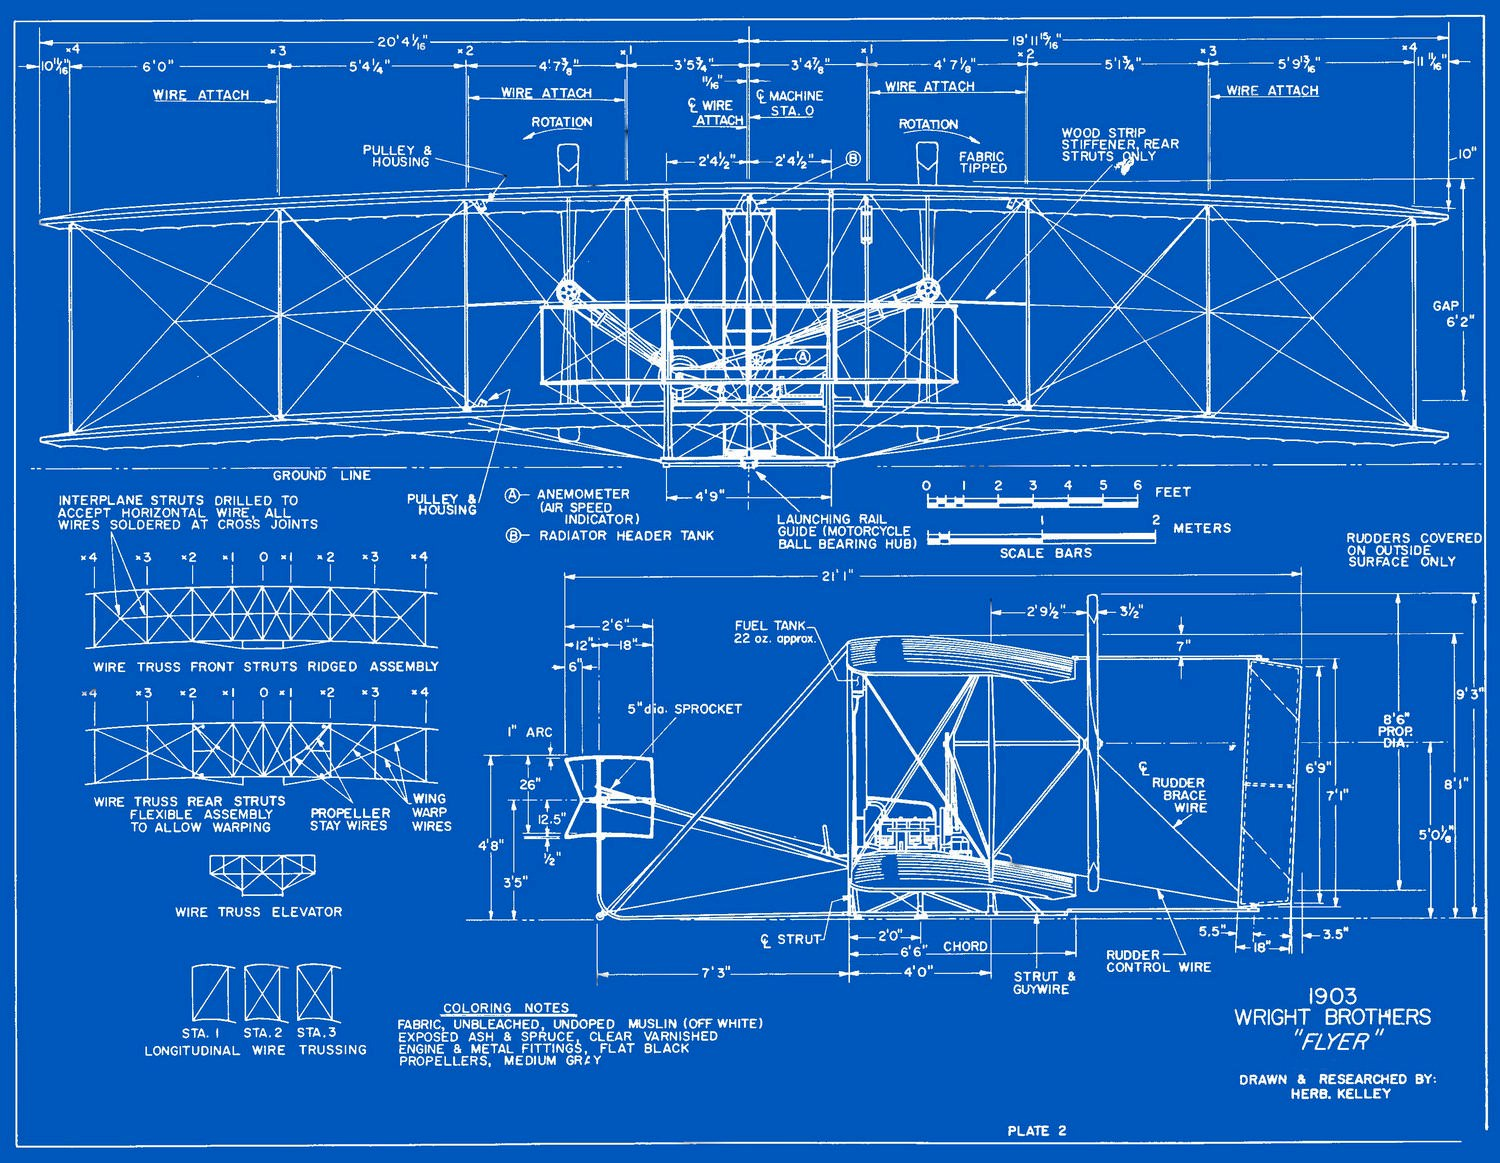 1903 wright flyer blueprints free download 1903 wright flyer blueprints free download malvernweather Gallery